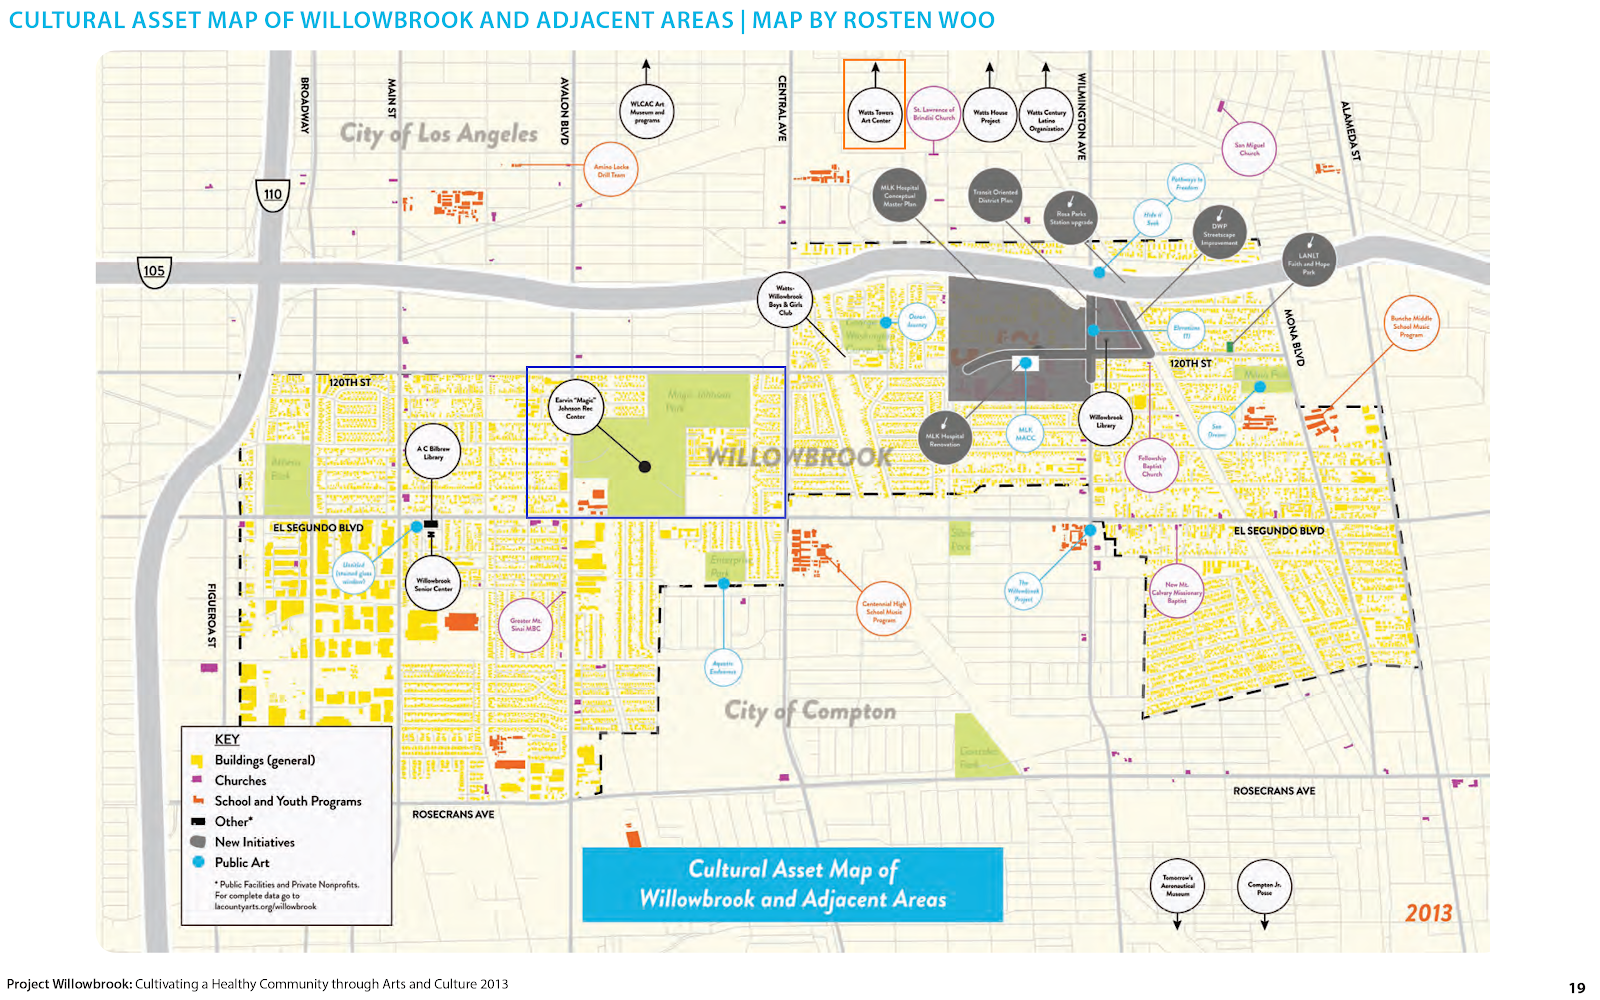 Cultural Asset Map of Willowbrook and Adjacent Areas, many of which Shorty biked by or spent time at. The dark blue rectangle represents Magic Johnson Park and the orange rectangle highlights Watts Towers. Project Willowbrook: Cultivating a Healthy Community through Arts and Culture is a project of the Los Angeles County Department of Arts and Culture and was developed in partnership with LA Commons and artist Rosten Woo. The project was supported in part by the National Endowment for the Arts and the Office of Los Angeles County Supervisor Mark Ridley-Thomas. https://www.lacountyarts.org/willowbrook/